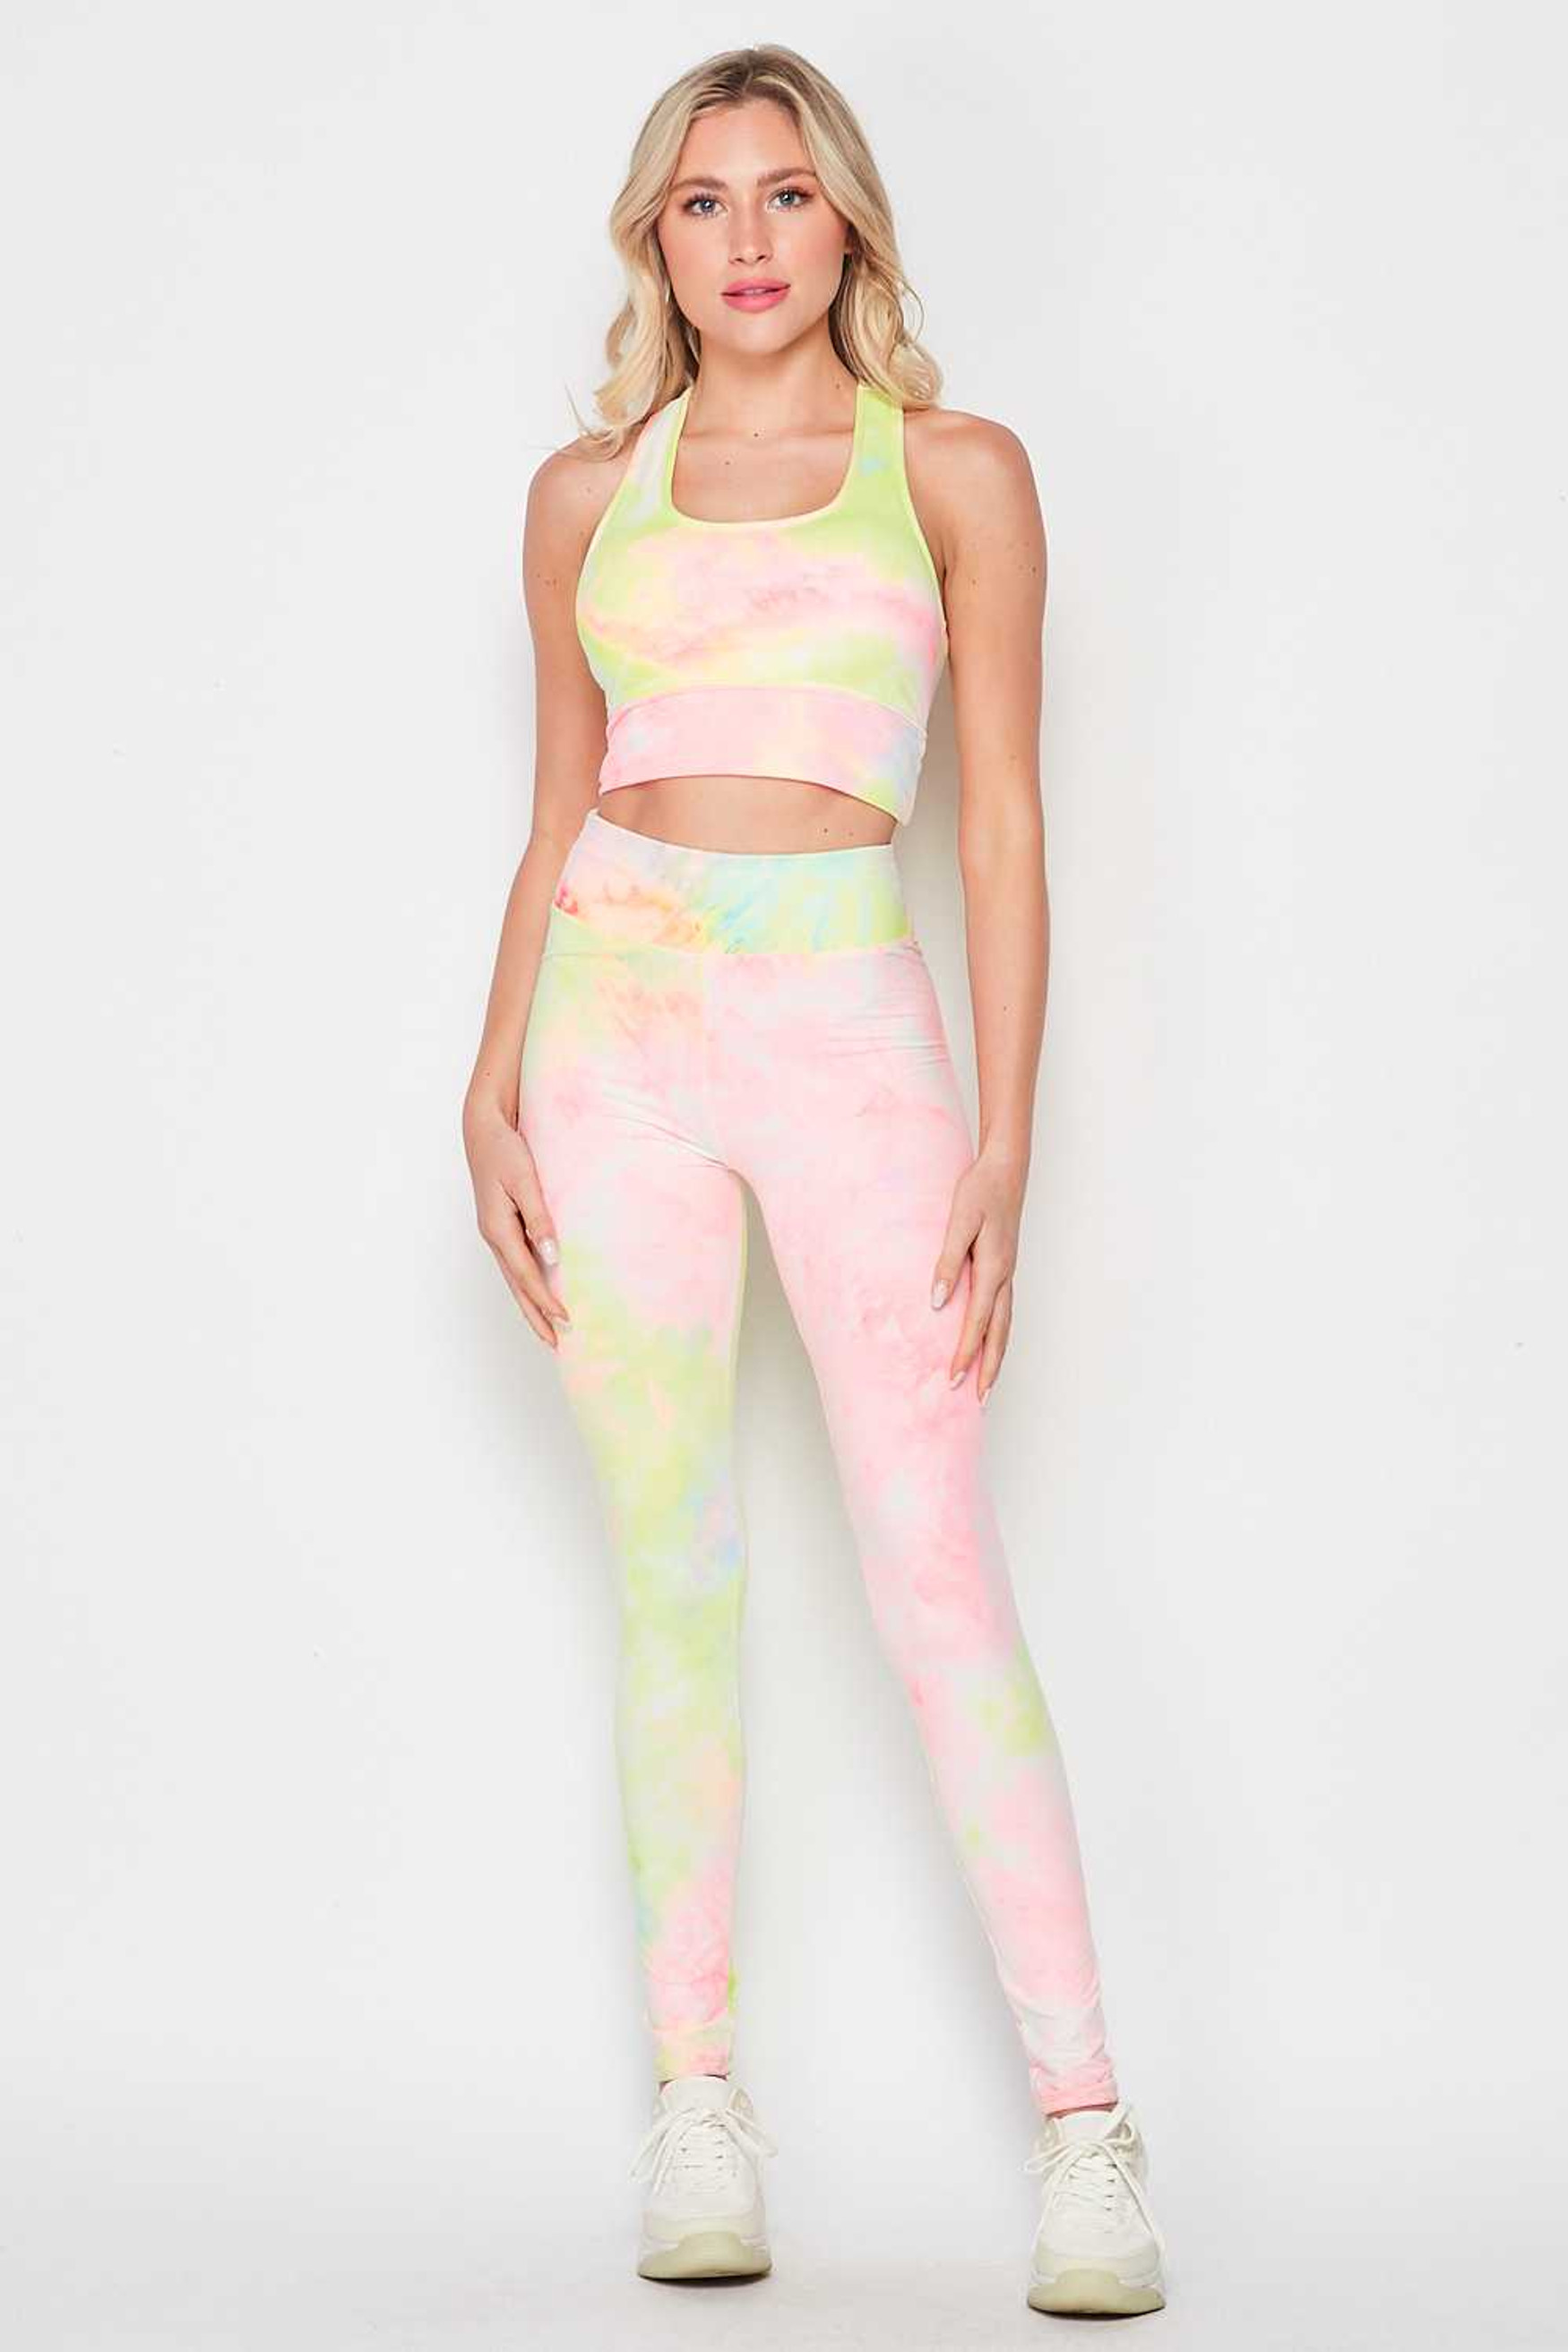 2 Piece Pink and Yellow Tie Dye Crop Top and Legging Set